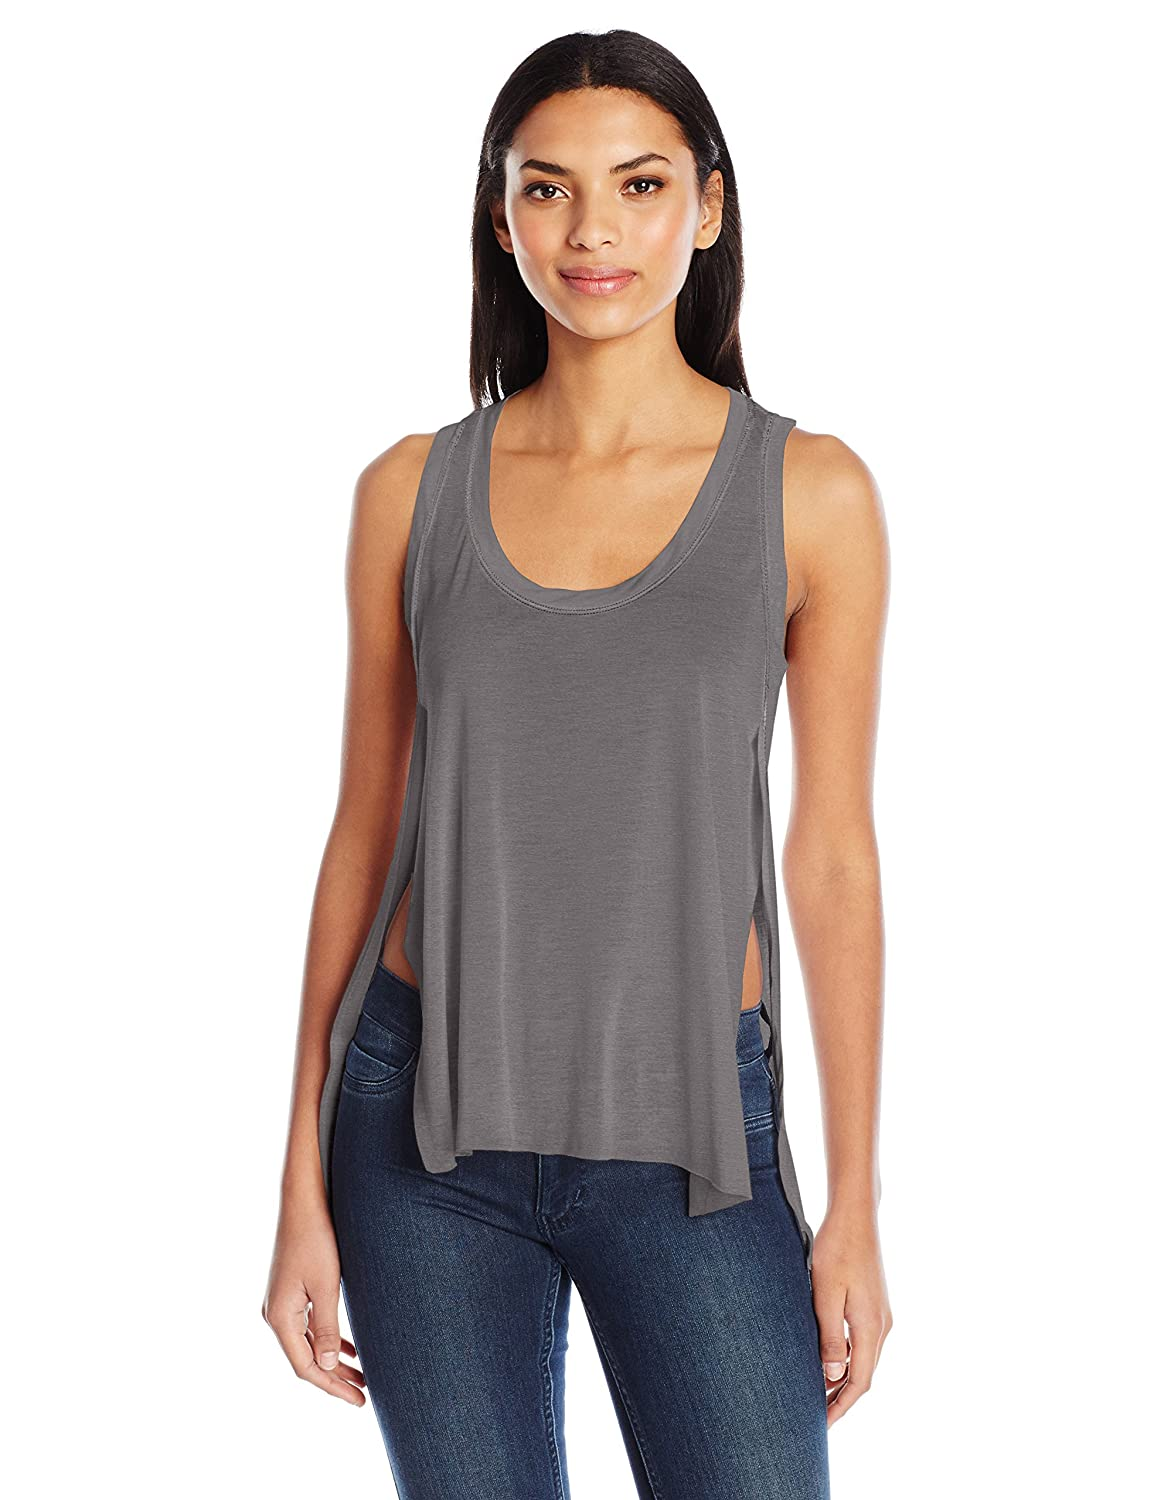 Cement Bailey 44 Womens Tail Wind Top Tank Top Cami Shirt